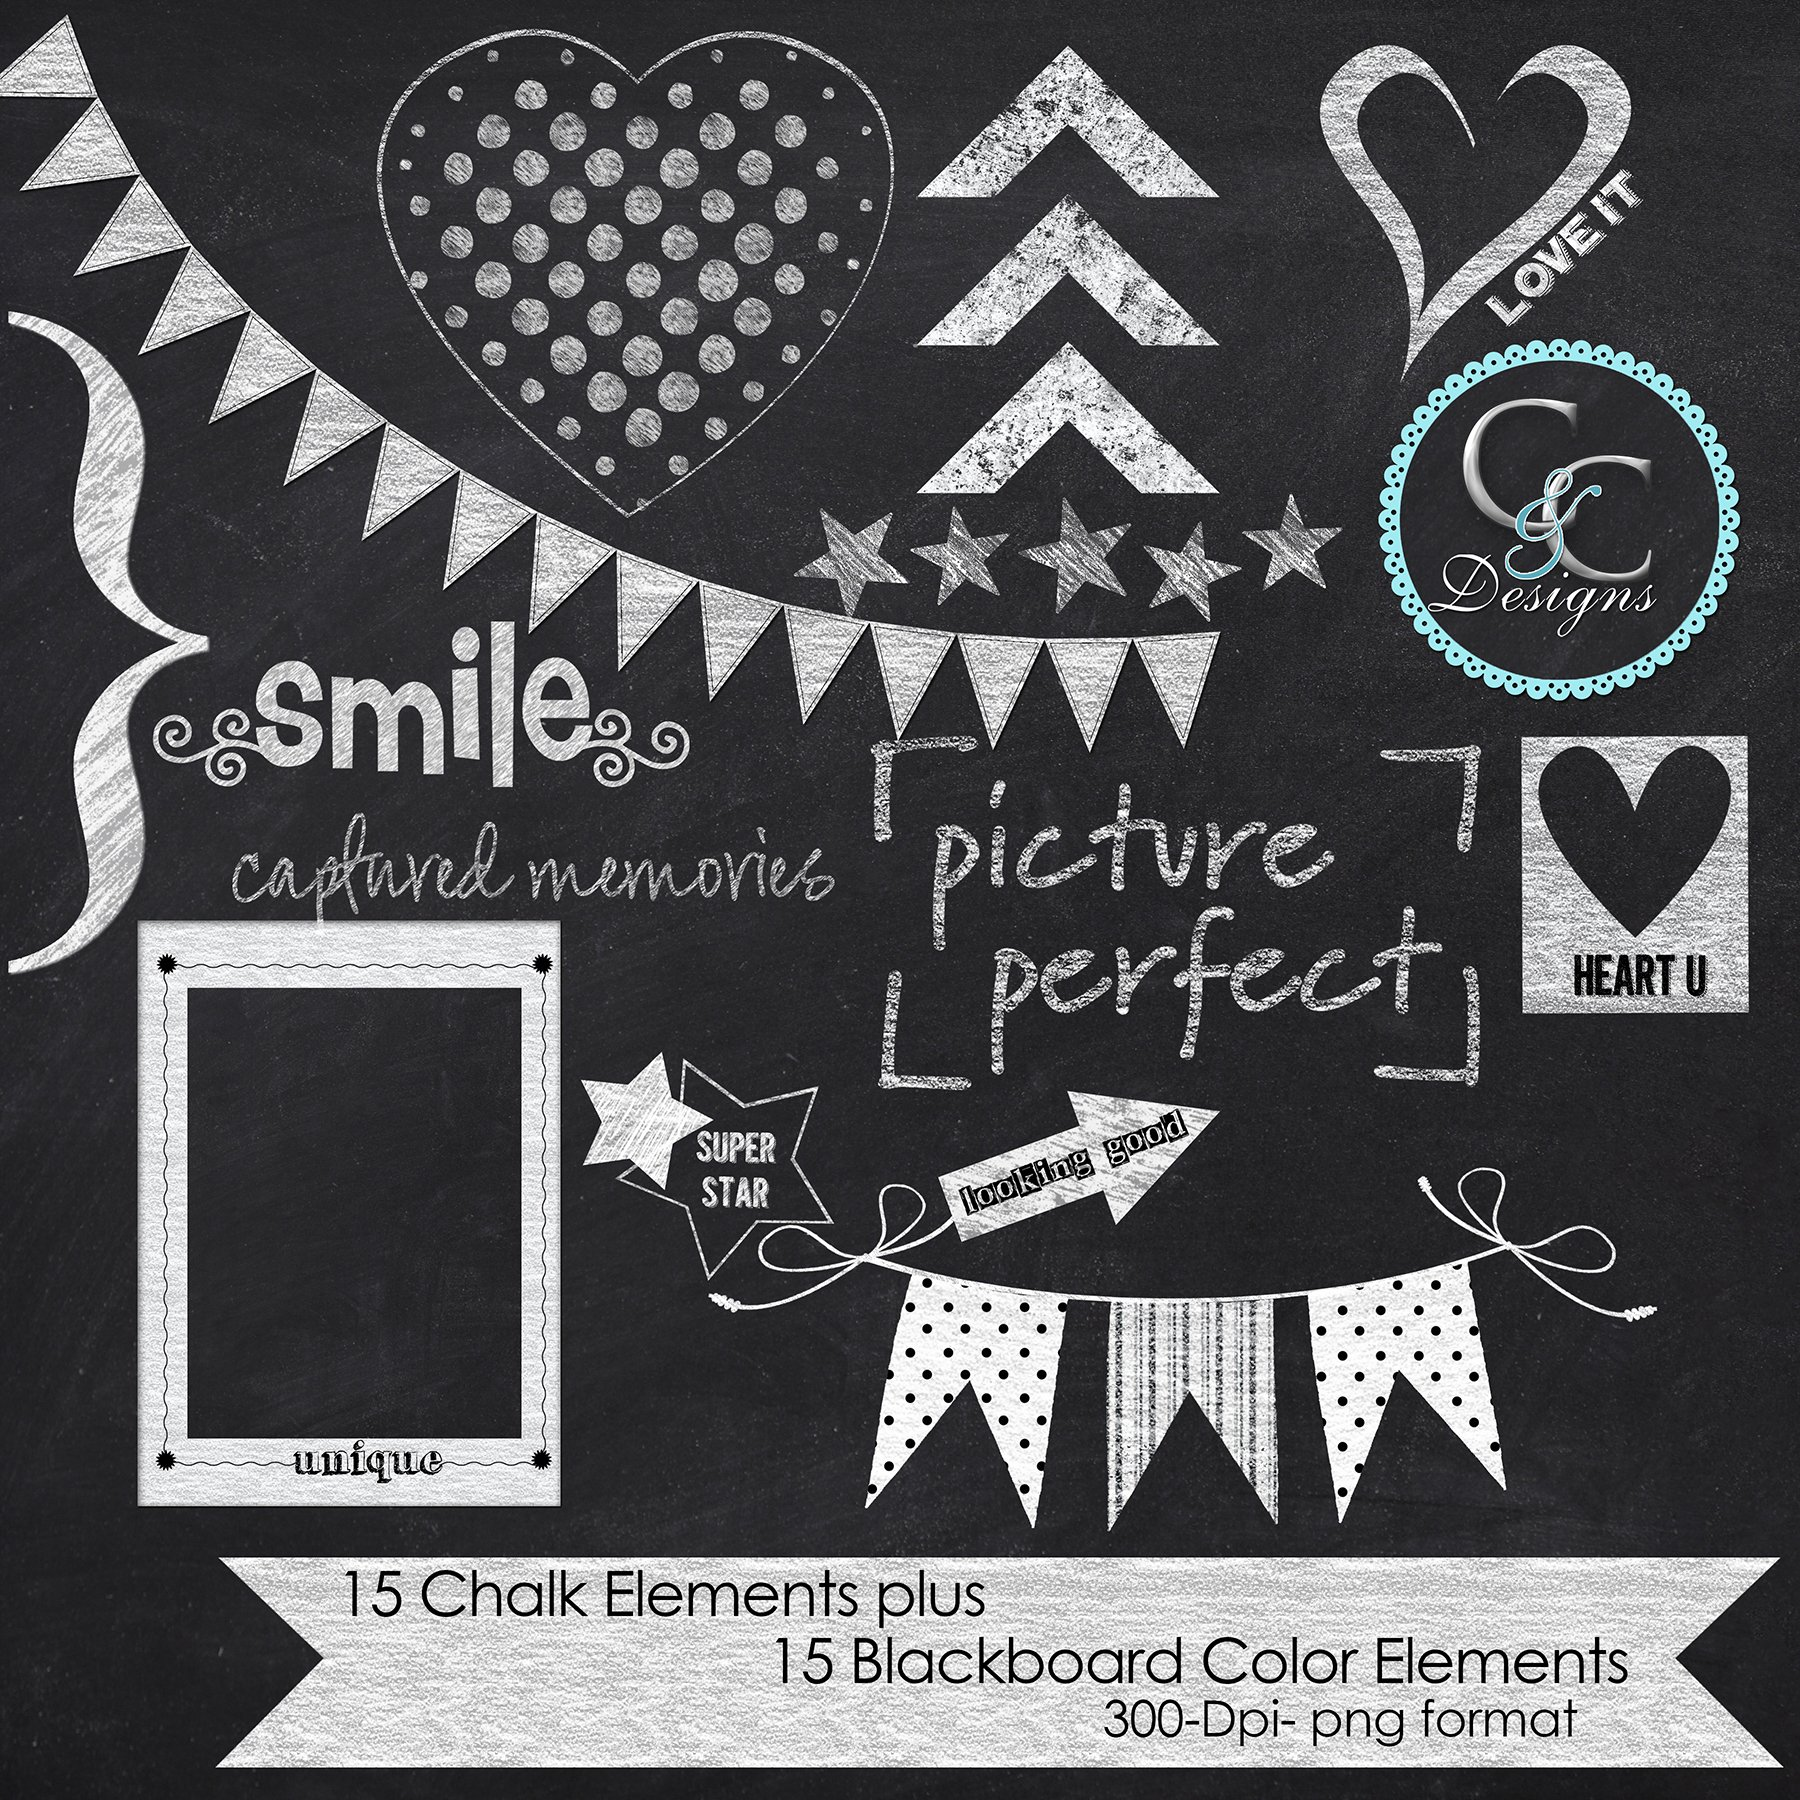 30 Chalkboard Elements Clip Art Graphic Objects